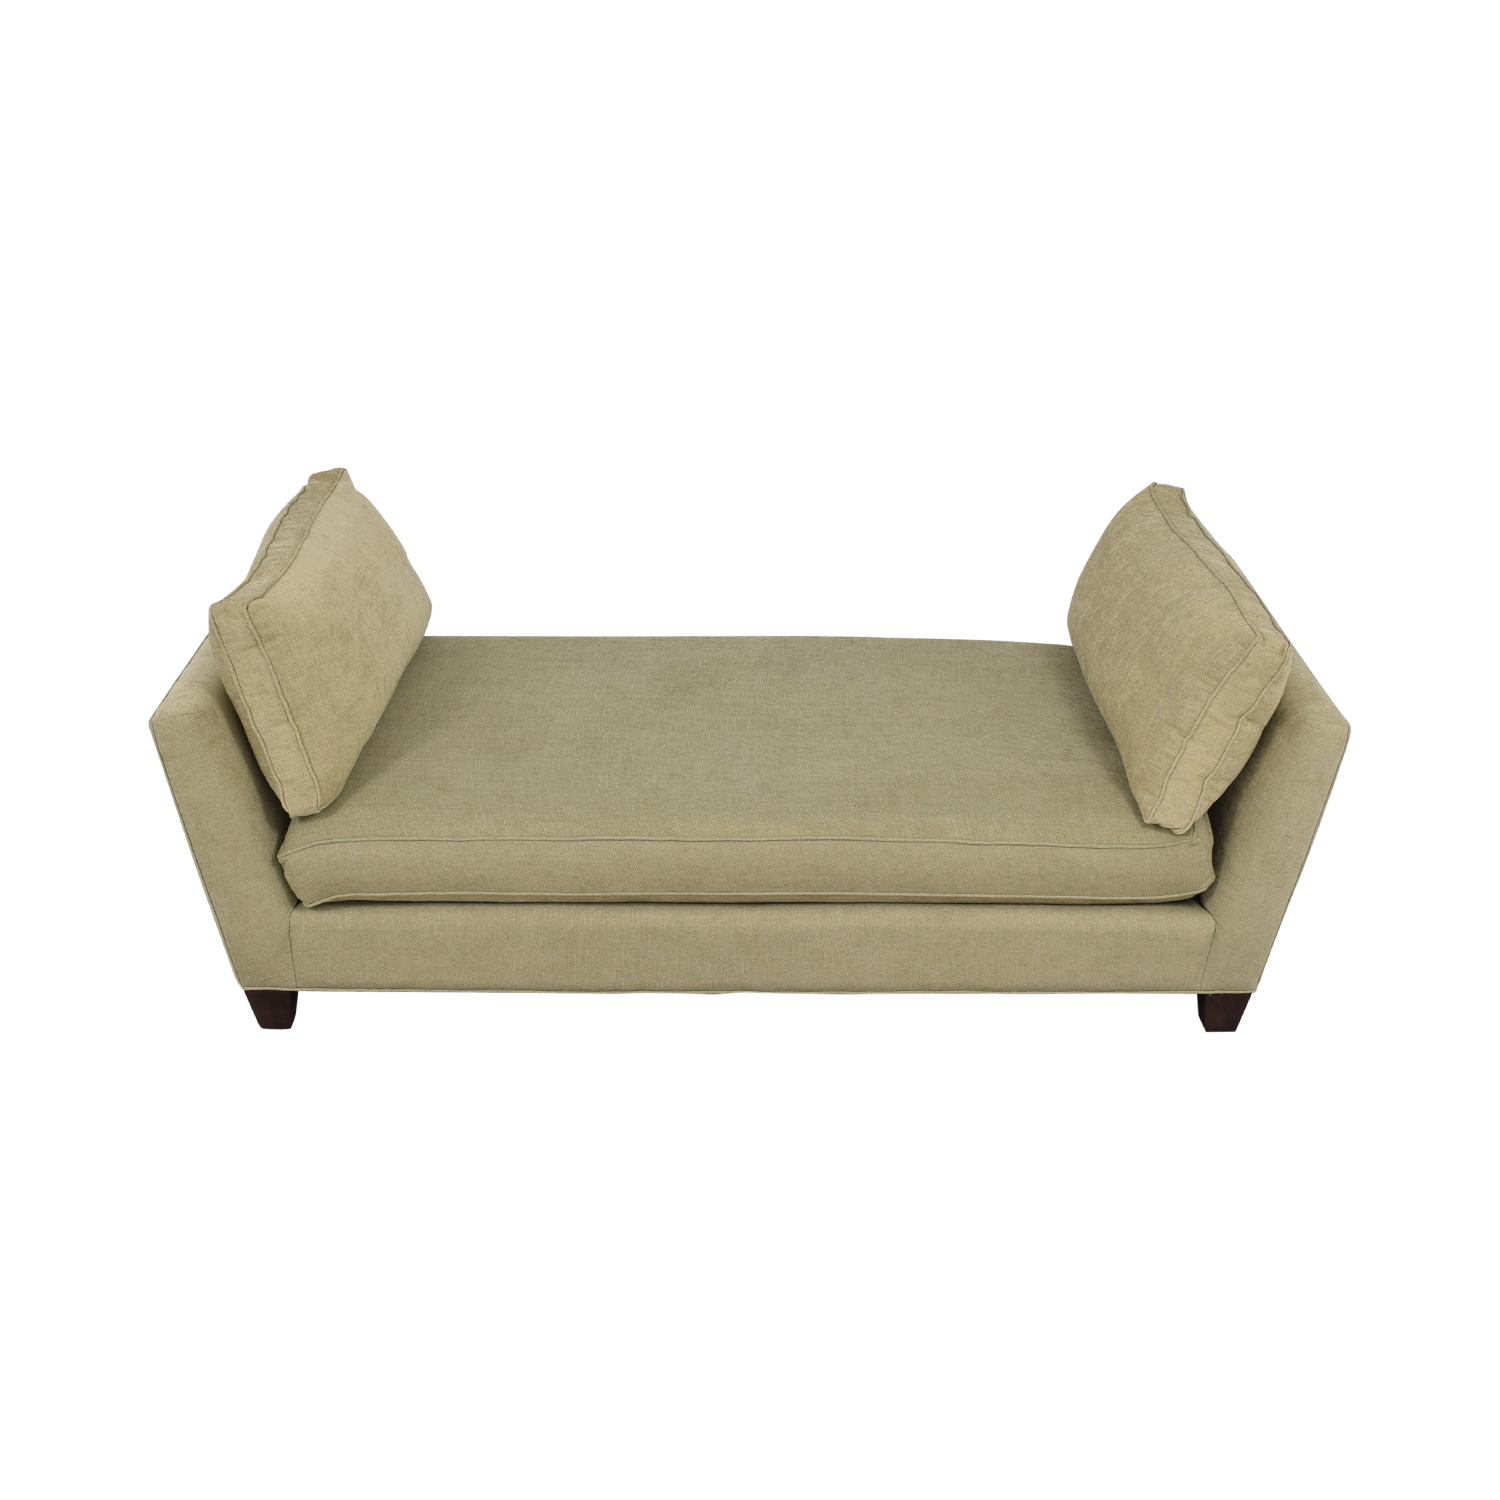 Crate & Barrel Crate & Barrel Marlowe Daybed for sale